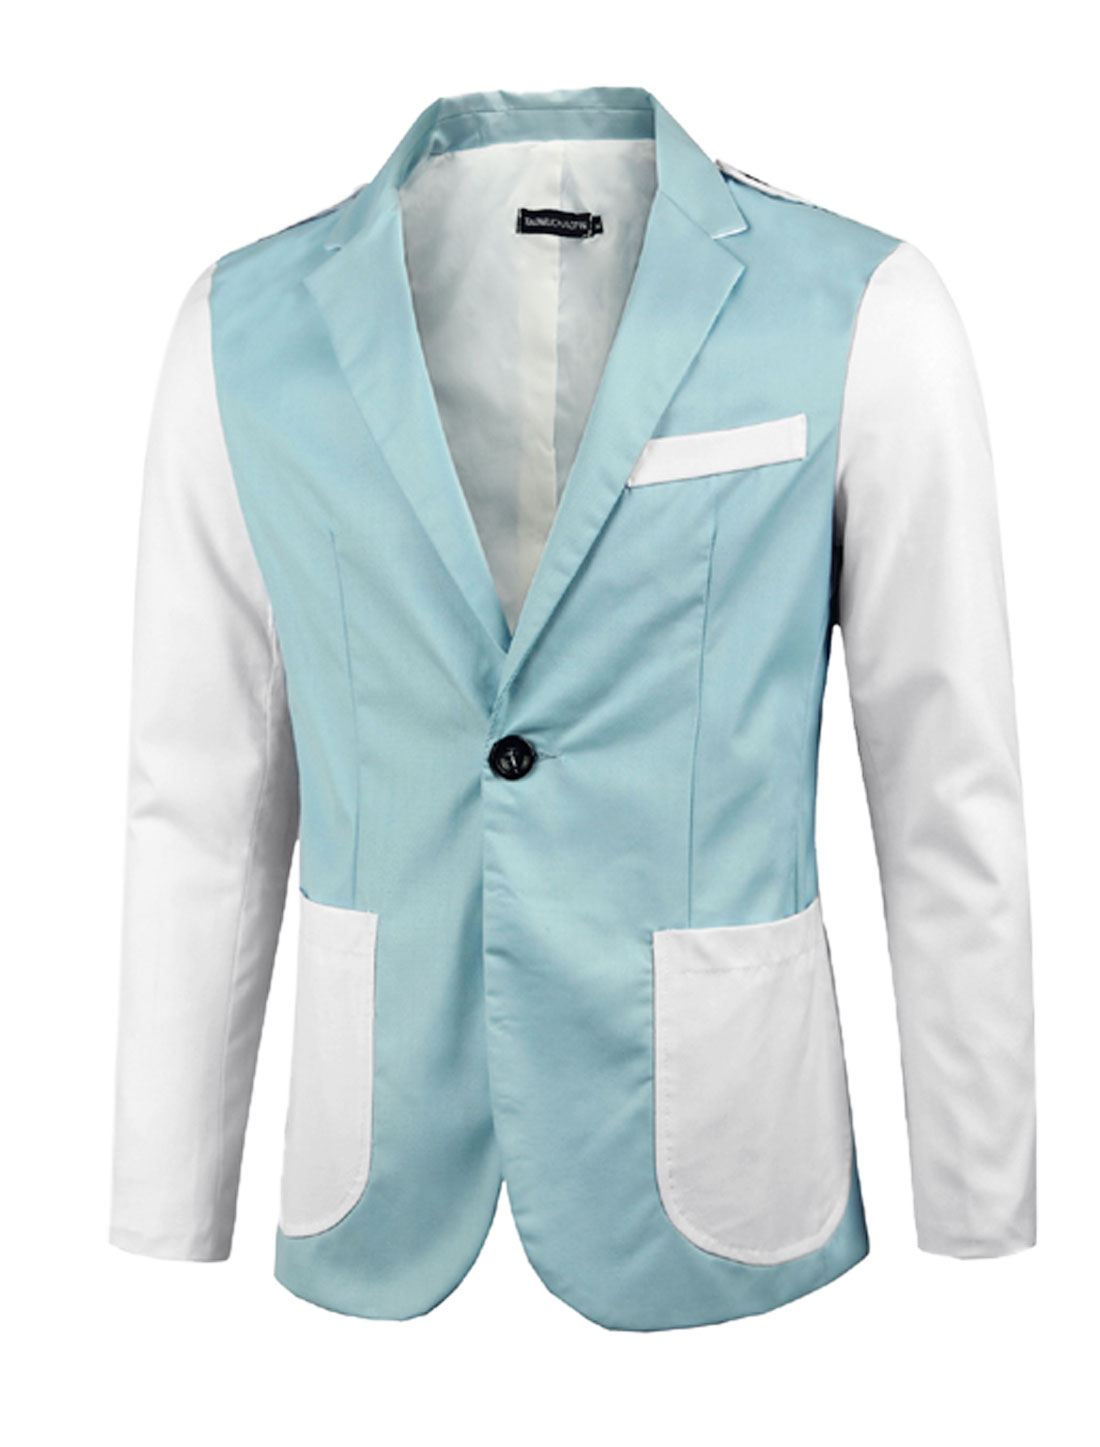 Men Light Blue Zip Closure Color Block Notched Lapel Split Back Blazer Jacket M